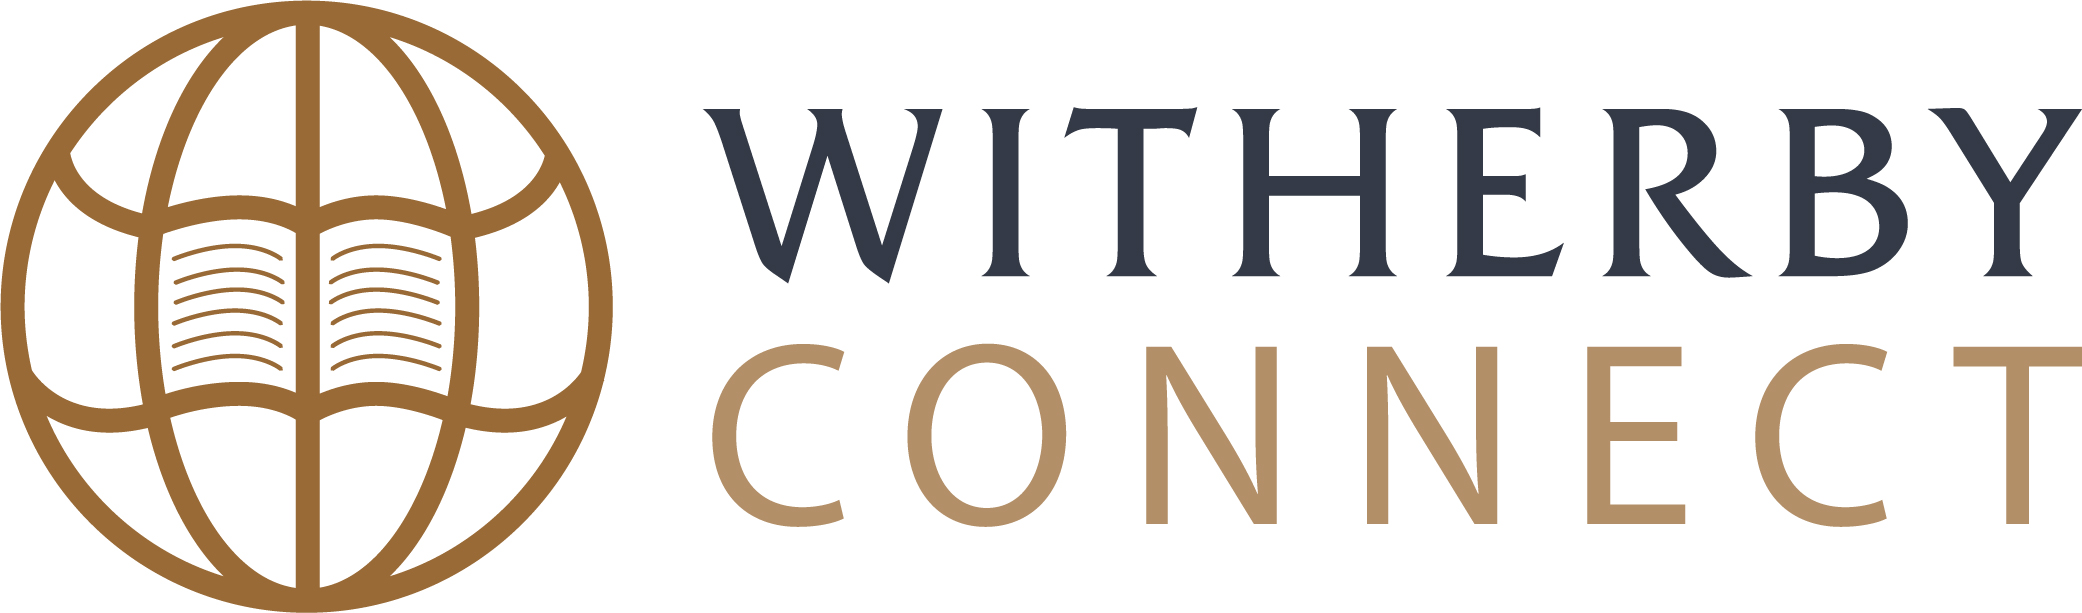 witherby-connect-logo-coloured.jpg